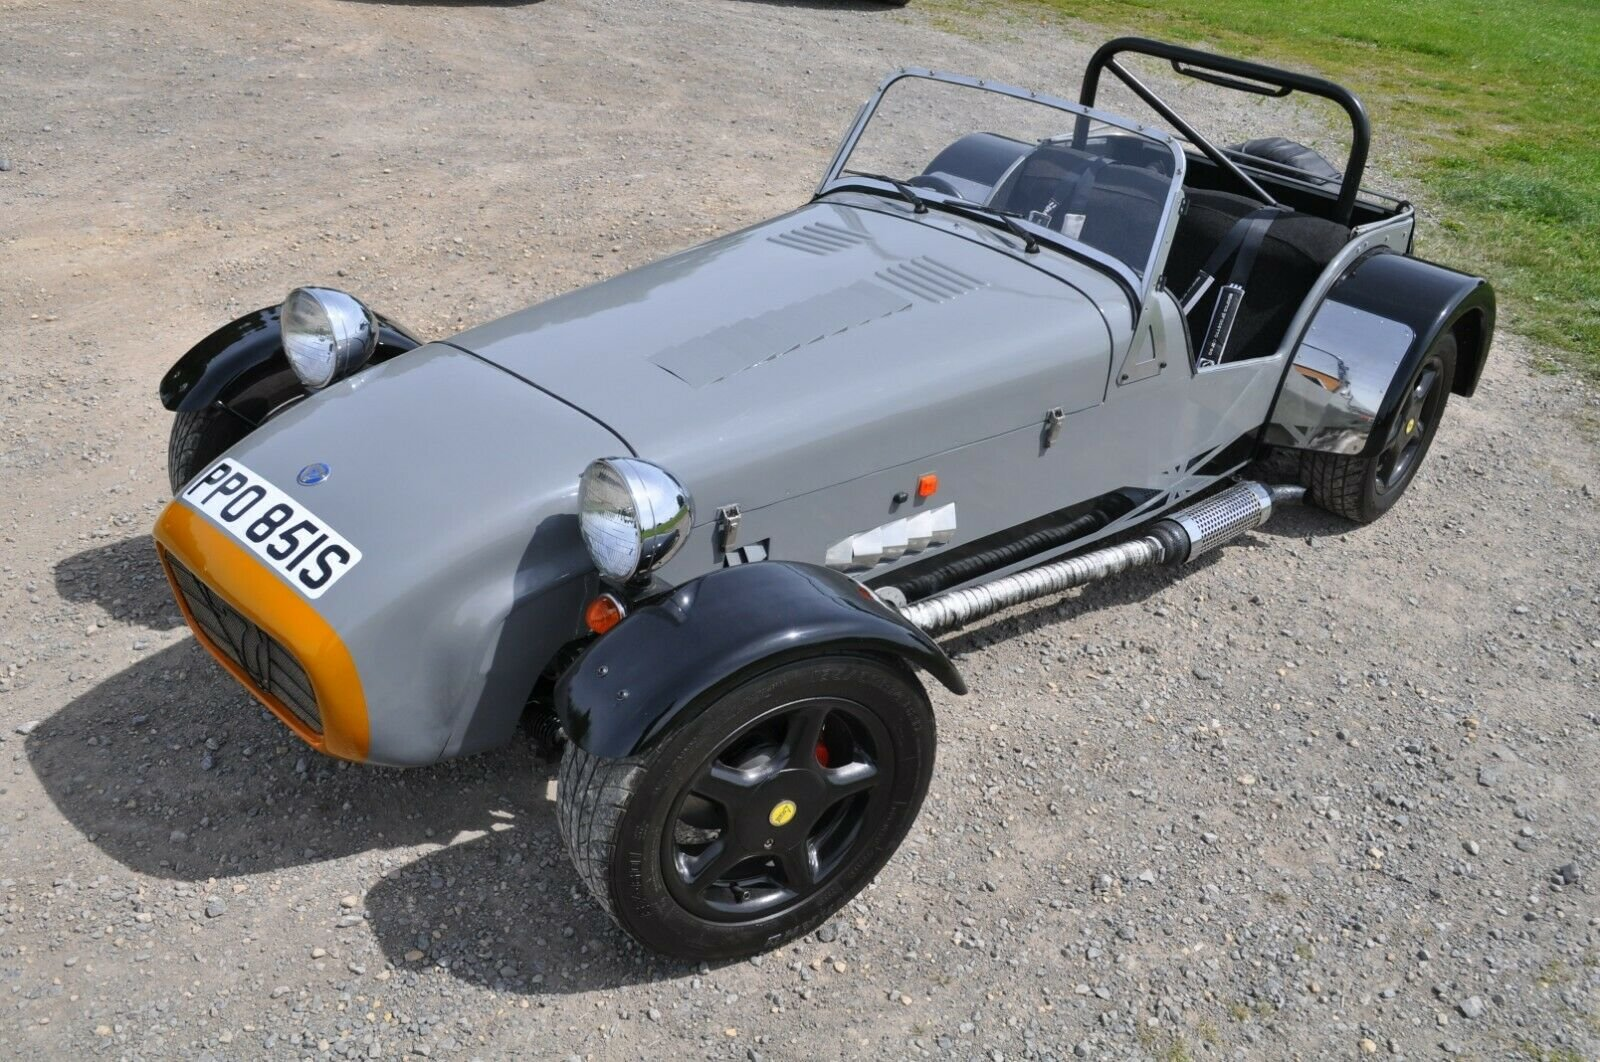 1978 LOCUST SEVEN 7 KIT CAR 1600 CROSSFLOW VGC CONDITION  SOLD (picture 1 of 5)